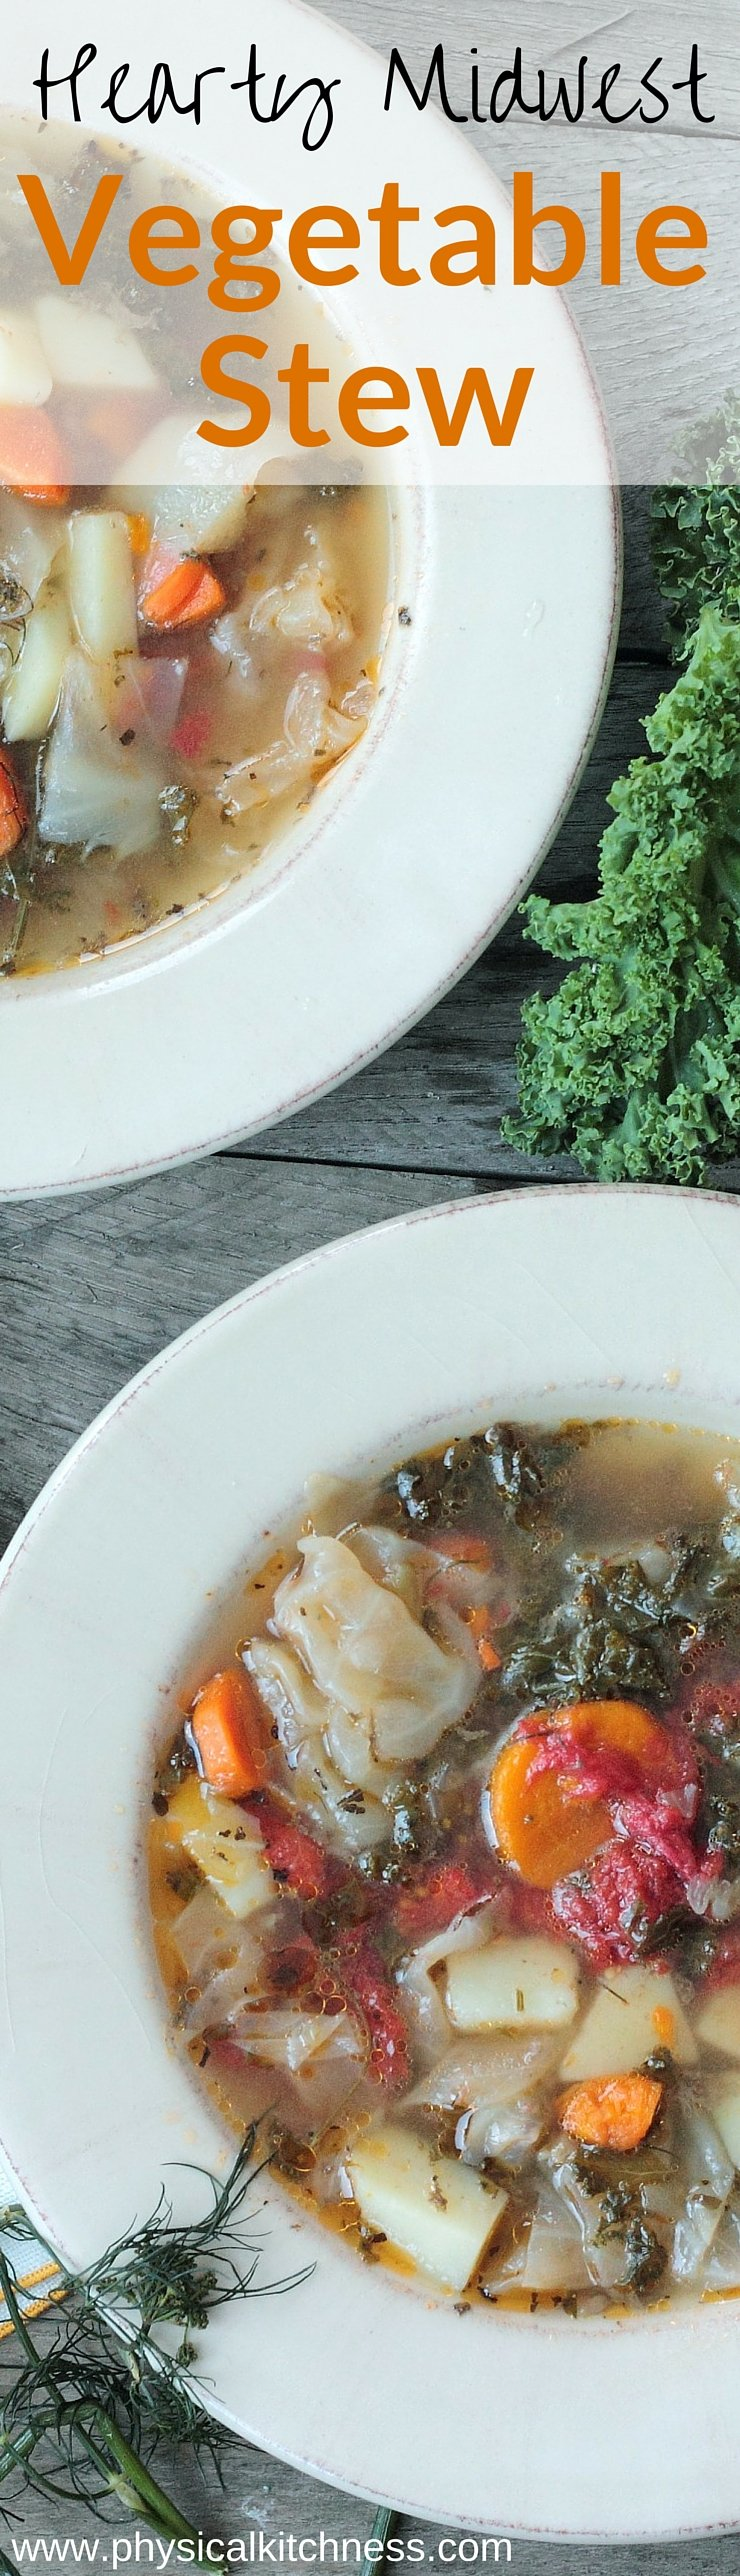 The absolute BEST vegetable stew you'll ever taste. The proof is in the broth! Super easy and whole30 complaint! Your next go-to comfort style soup!